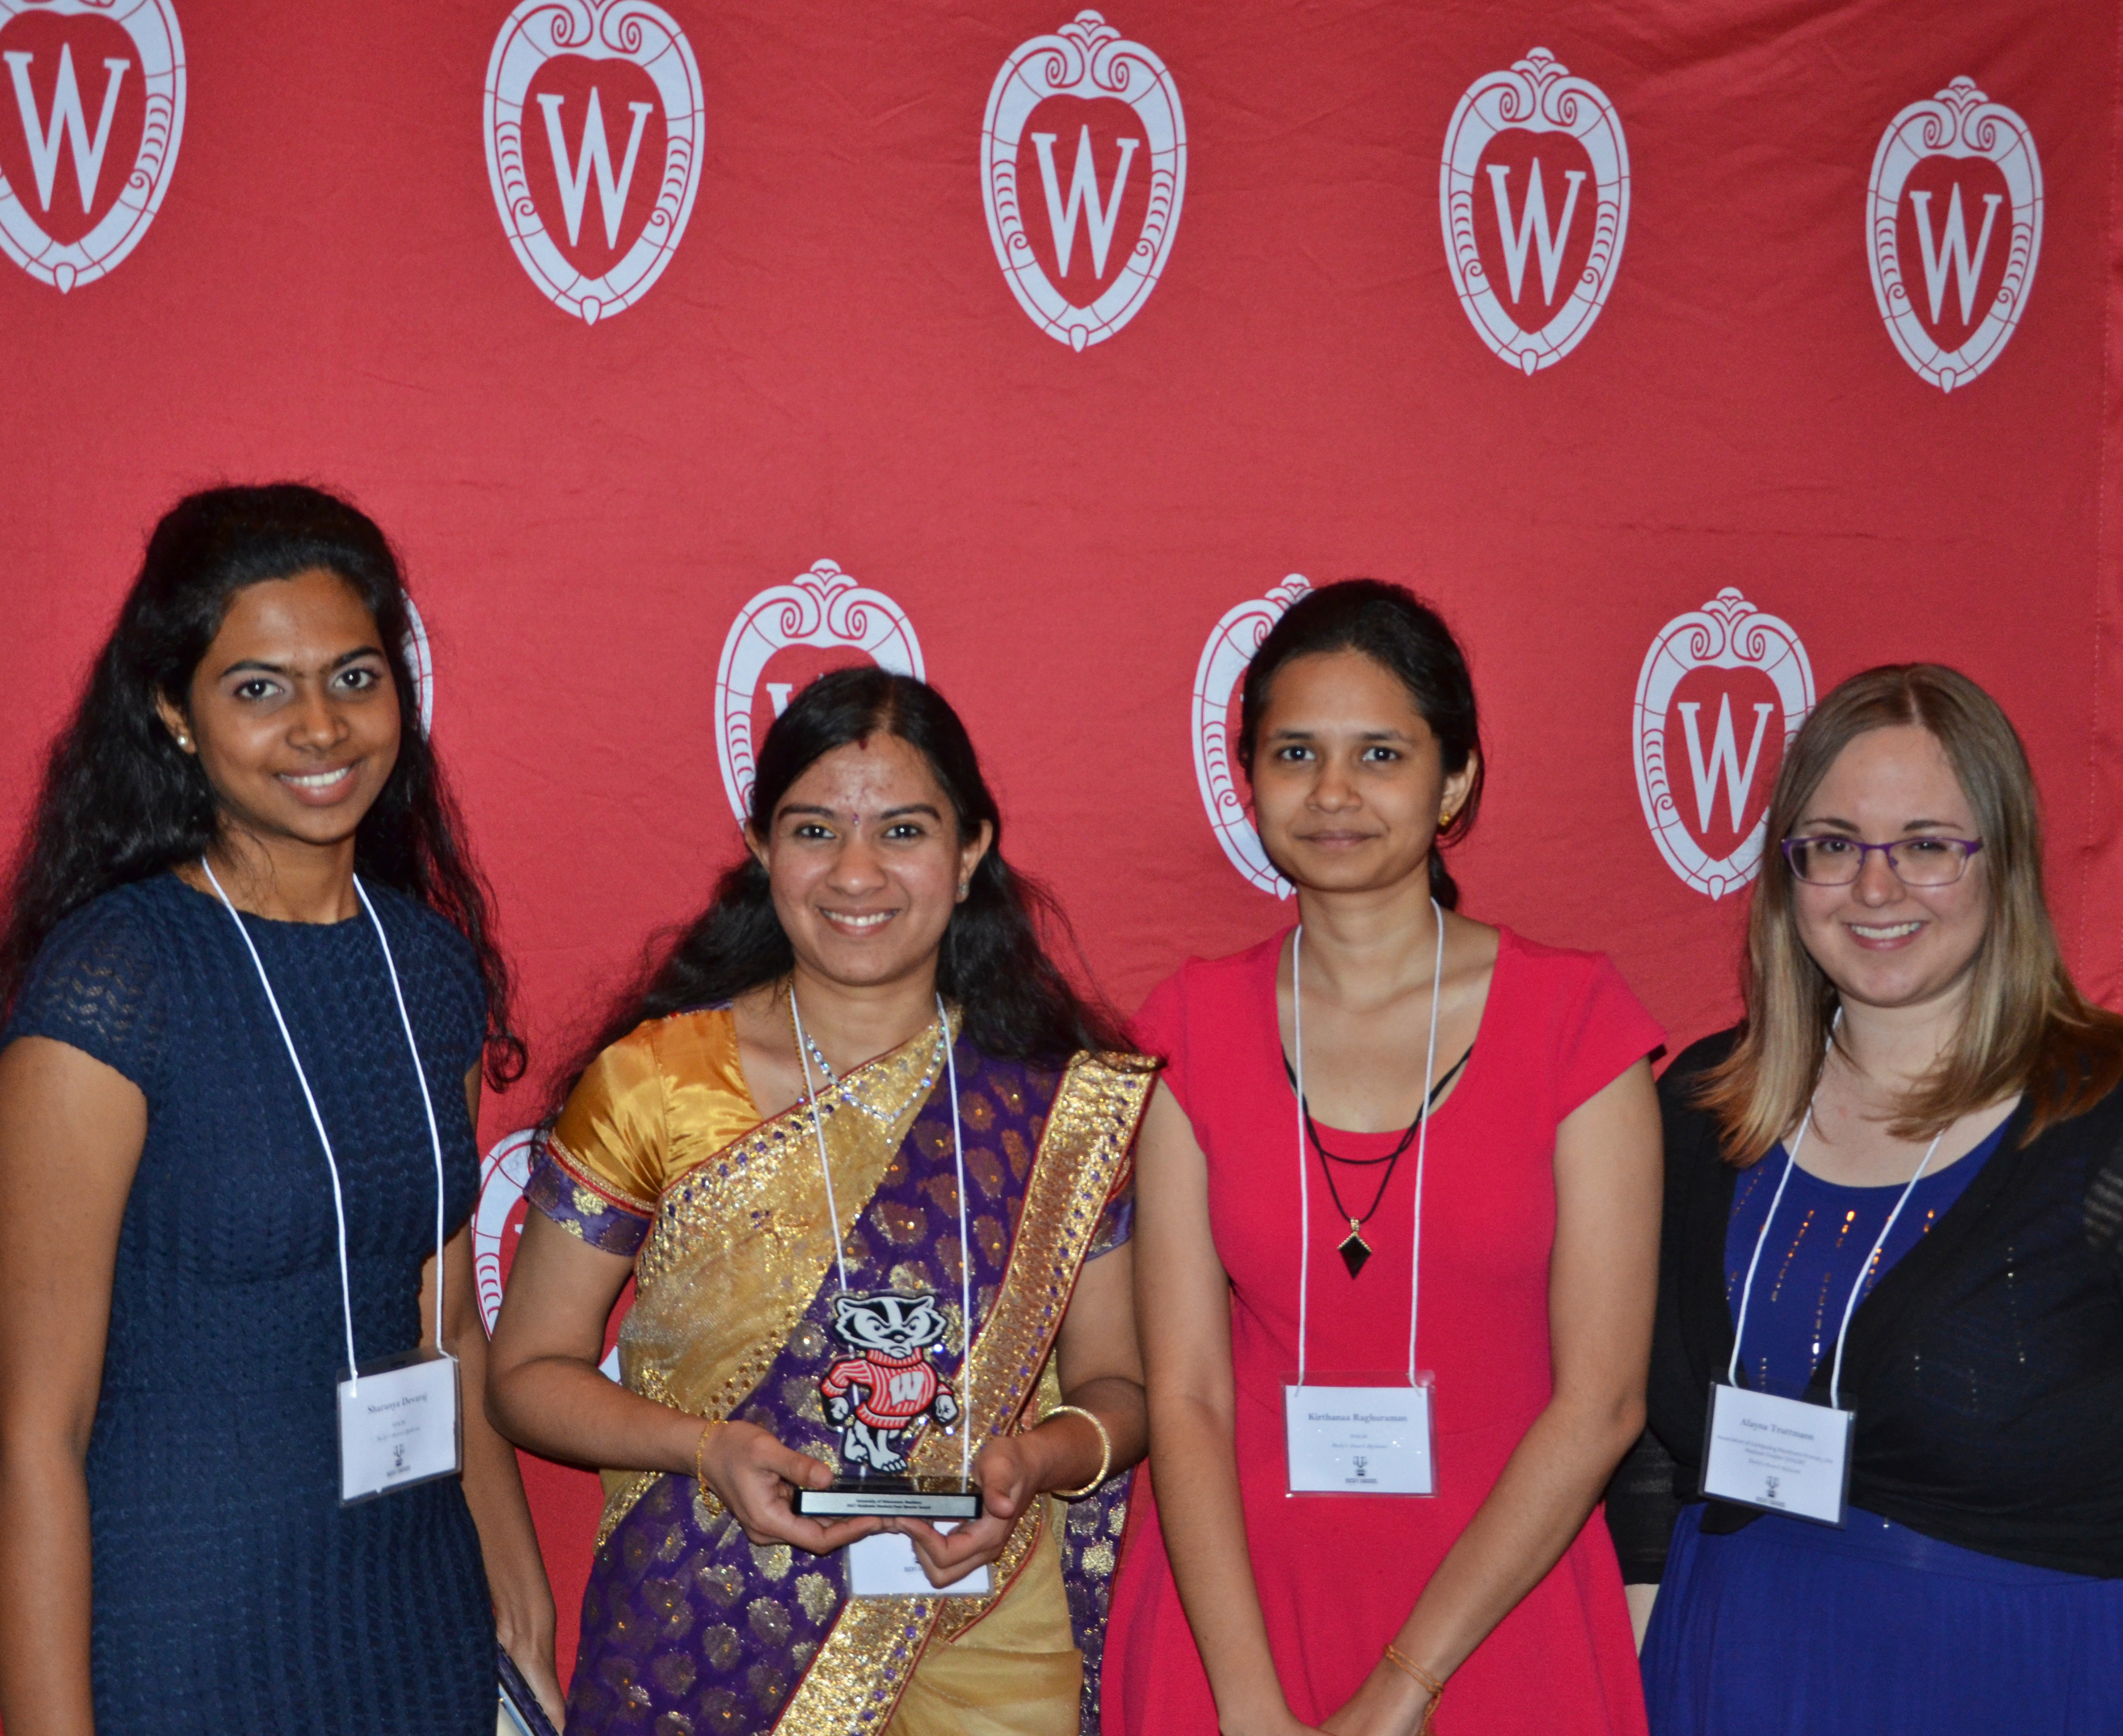 WACM at the Bucky's Awards Ceremony